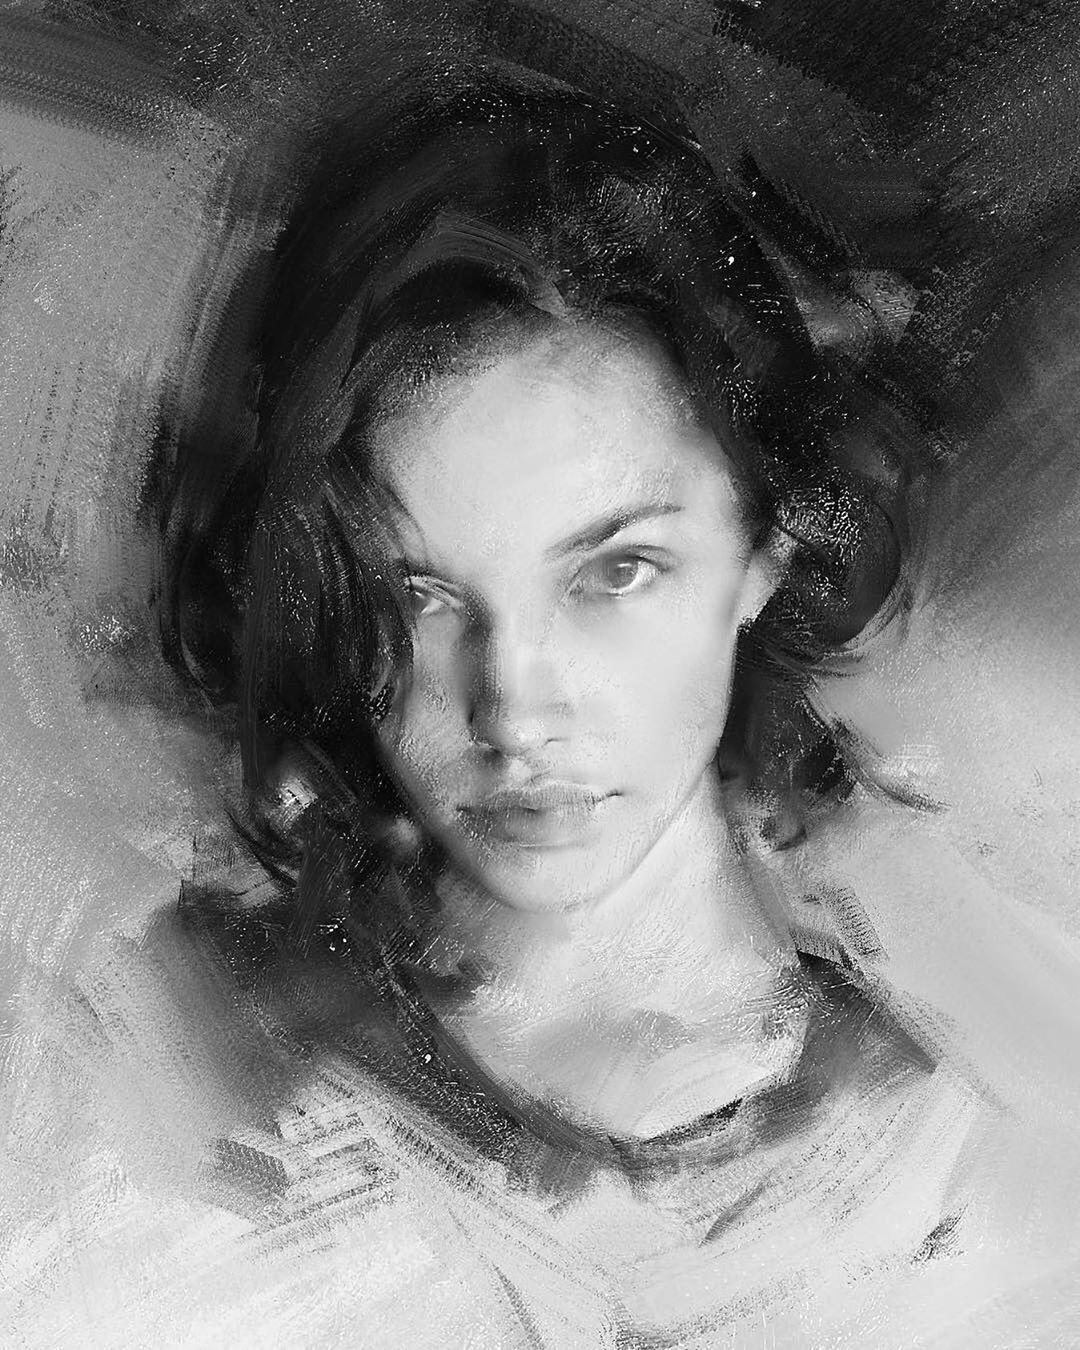 Proko On Instagram Wangjie Li Portrait Greyscale